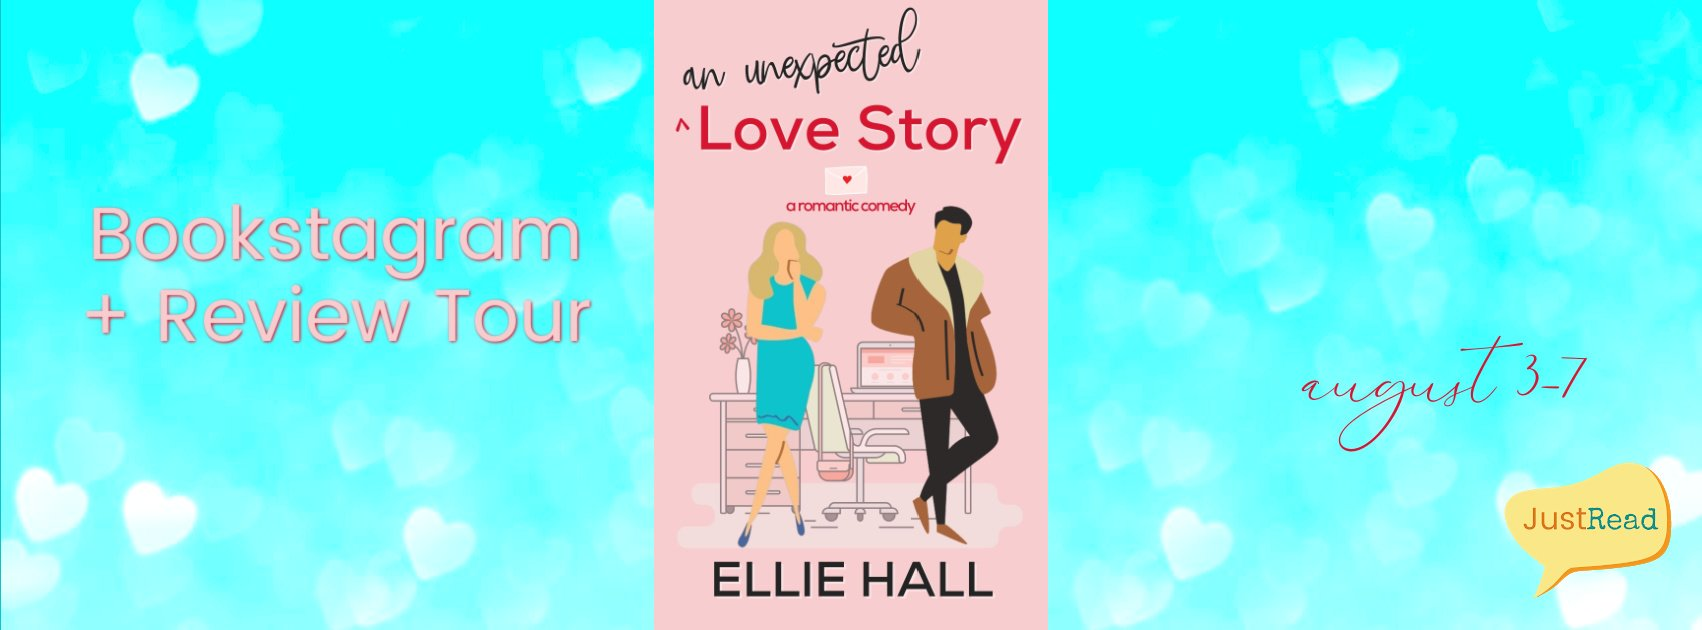 An Unexpected Love Story JustRead Bookstagram + Review Tour